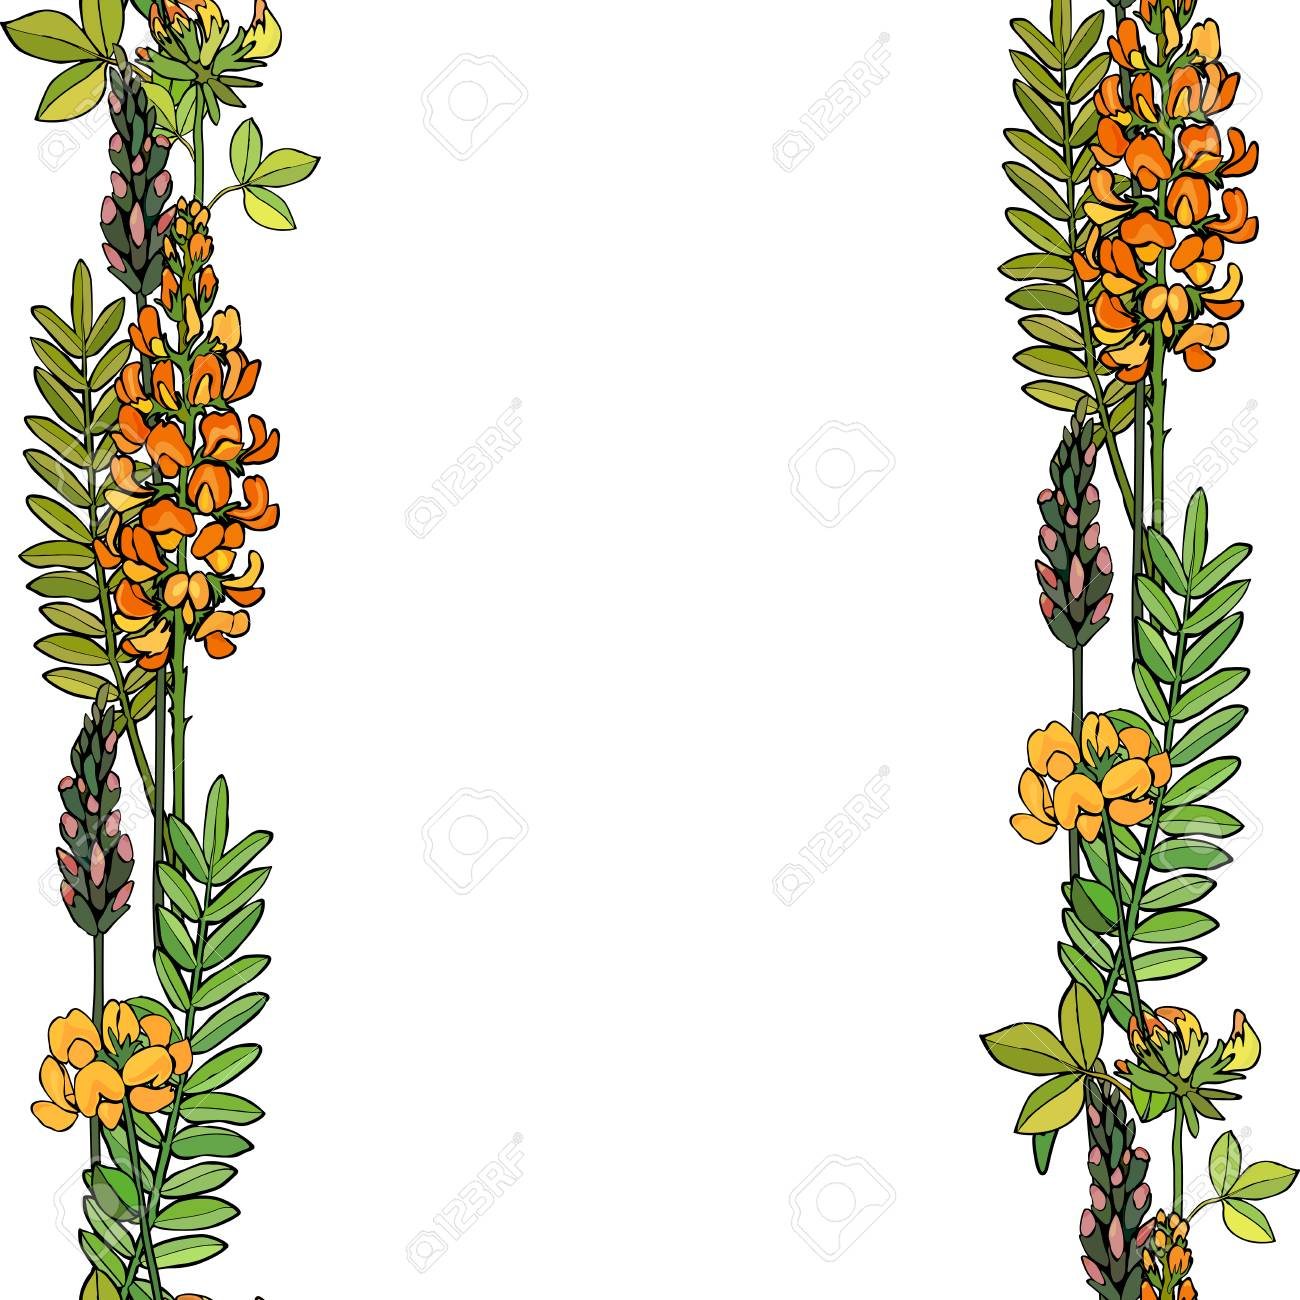 Seamless background with flowers. Perfect for greeting card. Vector illustration, EPS 10 - 124835056